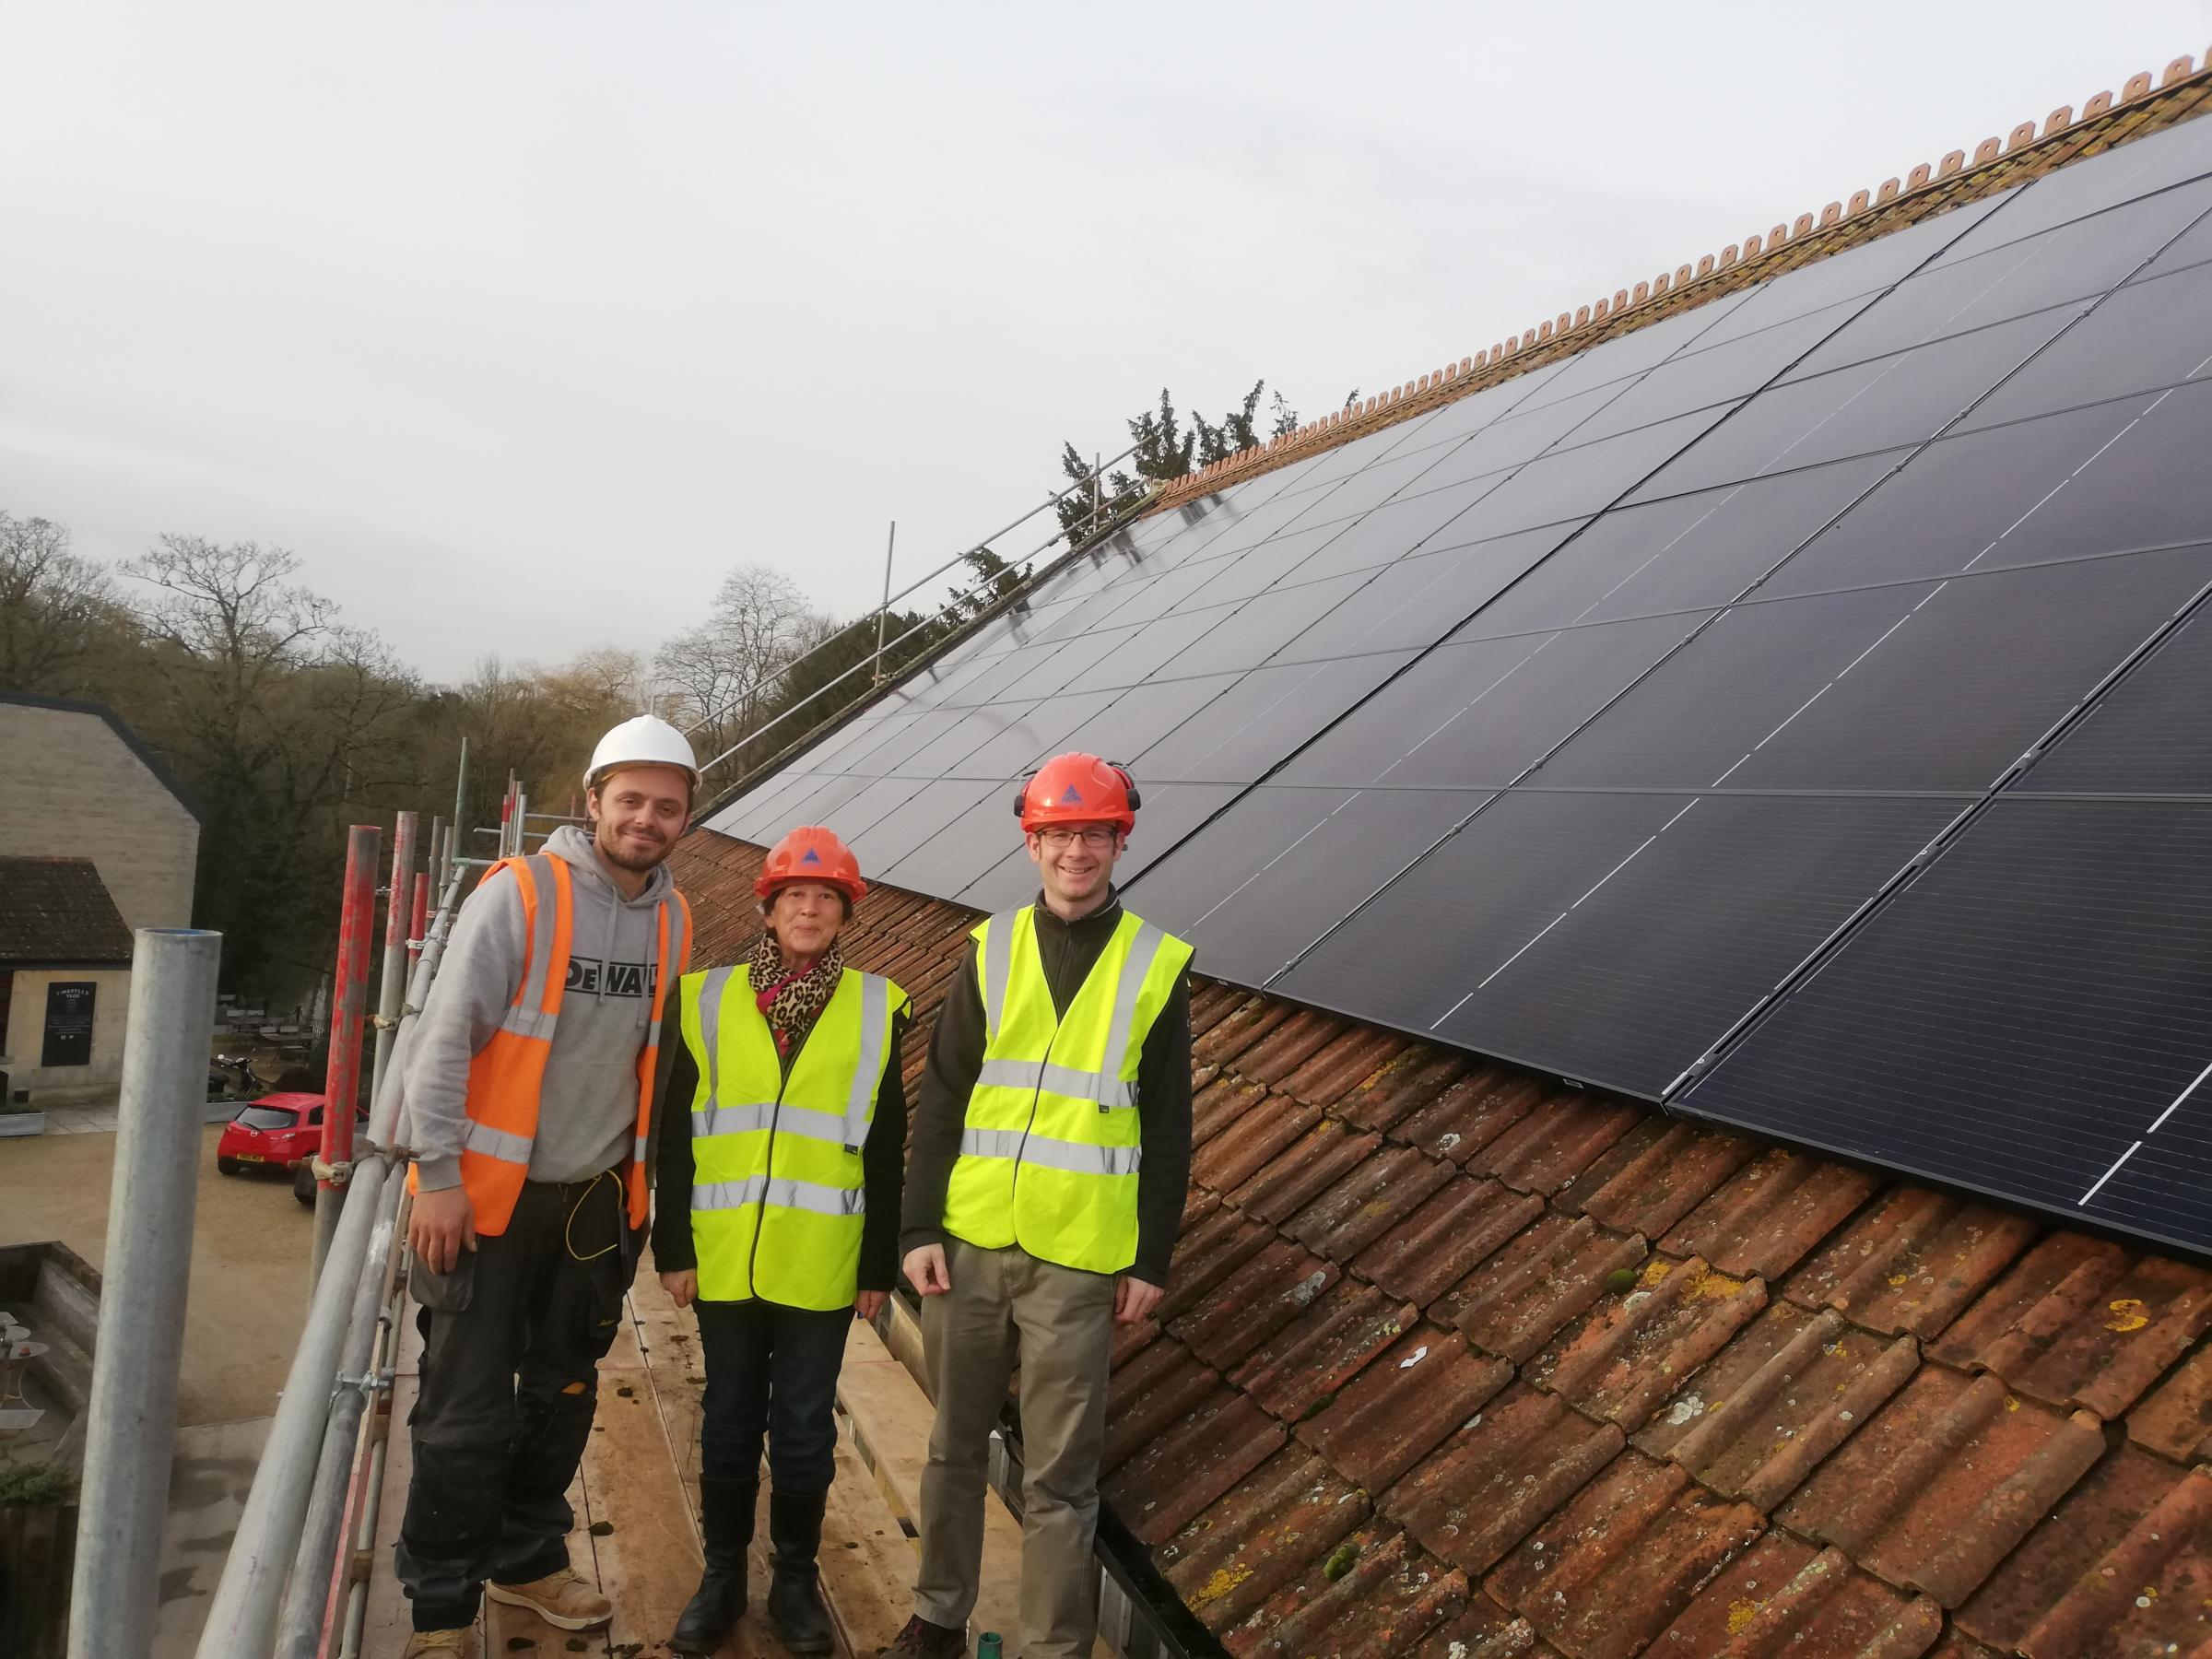 Bradford on Avon Mayor Cllr Alex Kay with solar panel installers at St Margaret's Hall